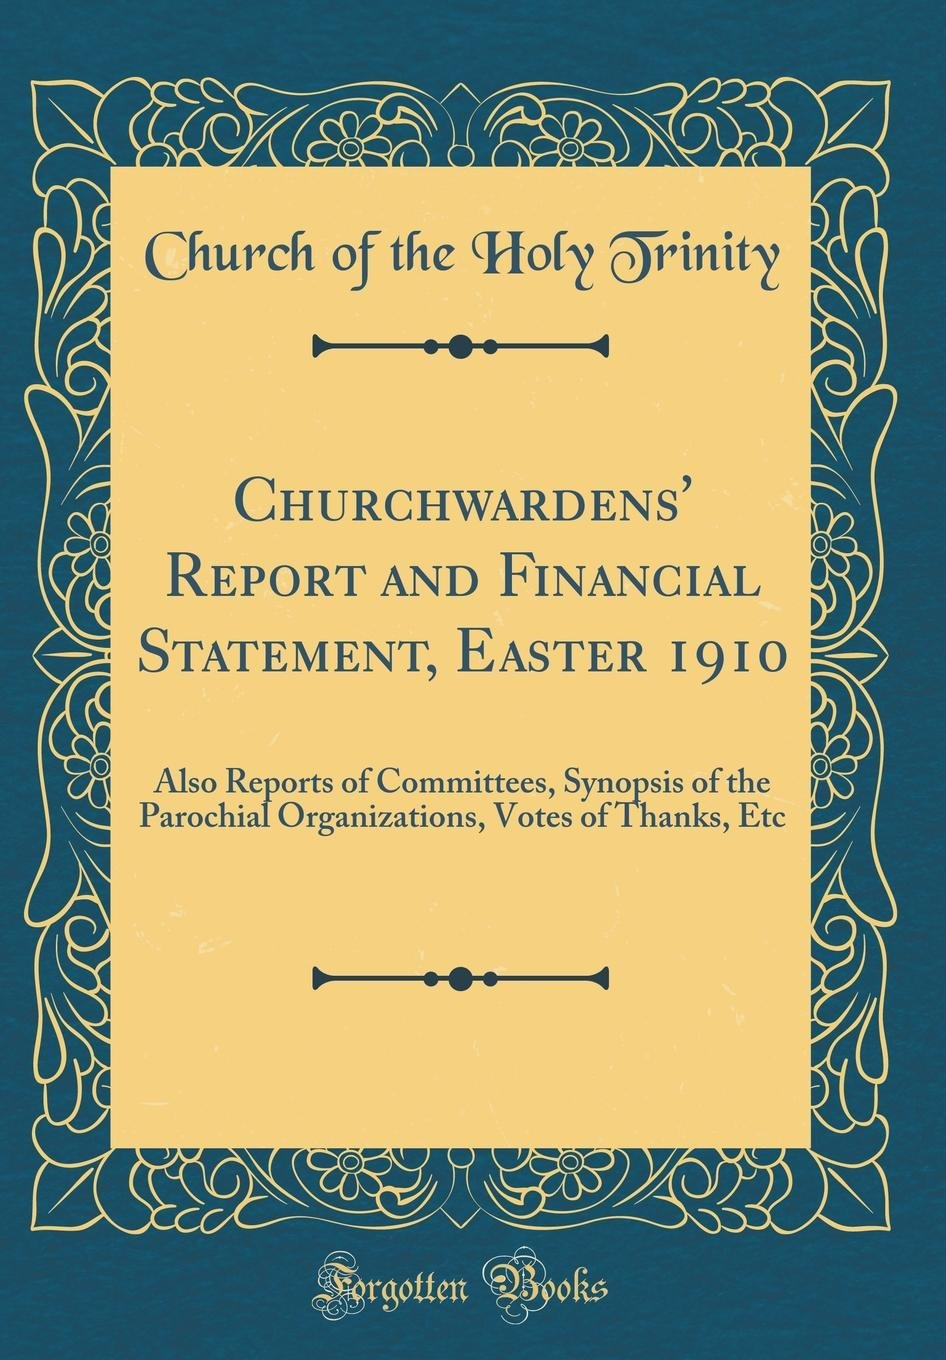 Churchwardens' Report and Financial Statement, Easter 1910: Also Reports of Committees, Synopsis of the Parochial Organizations, Votes of Thanks, Etc (Classic Reprint) PDF